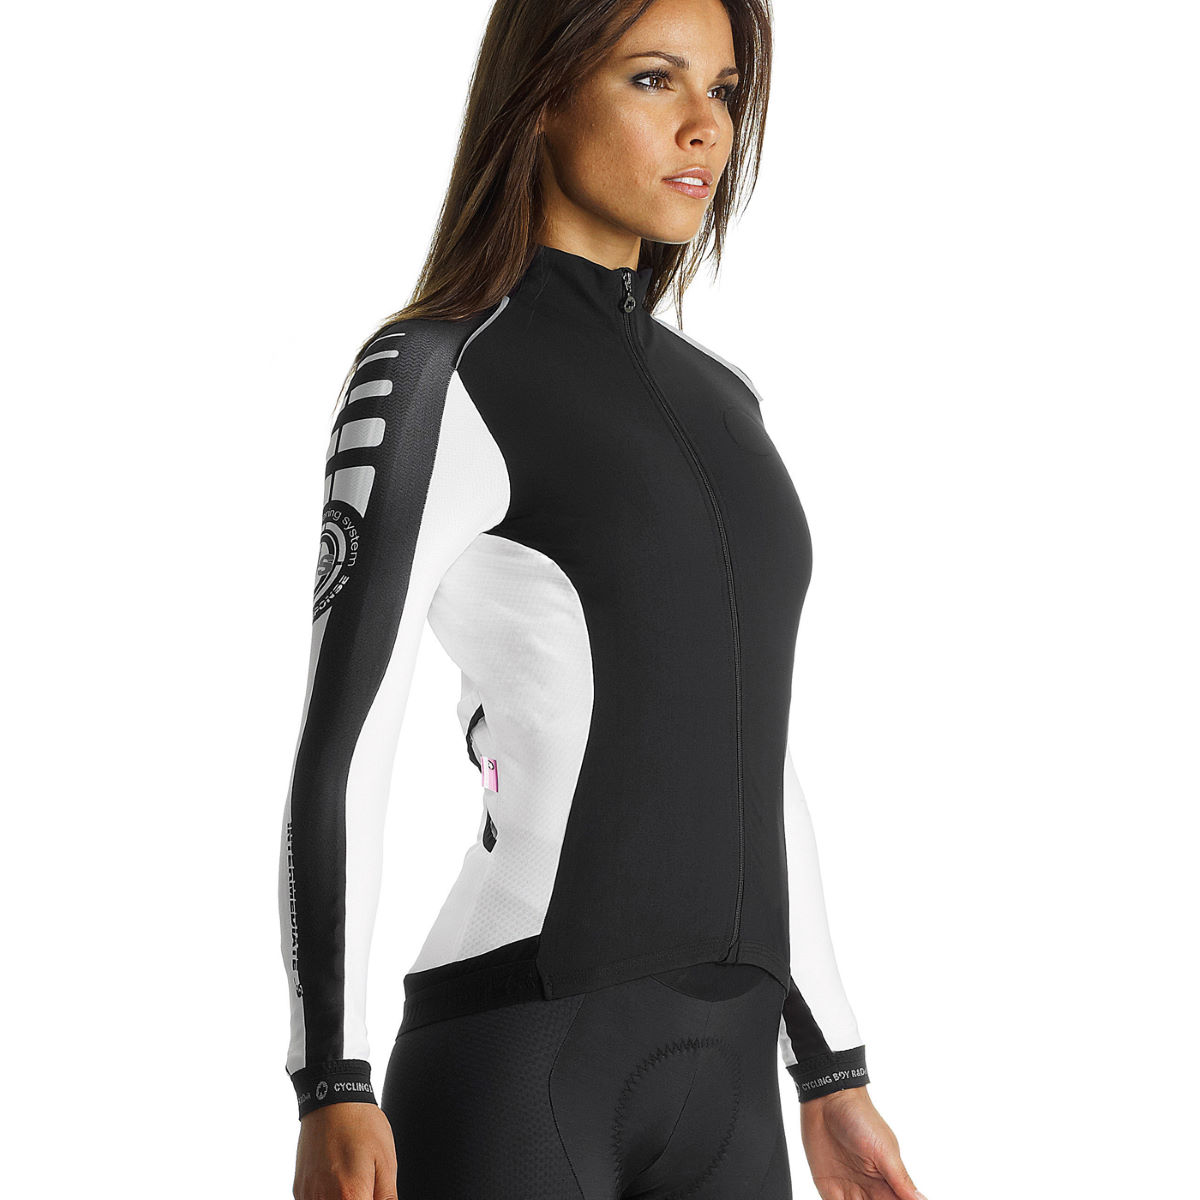 Maillot Femme Assos iJ.intermediate_s7 (coupe-vent) - XS